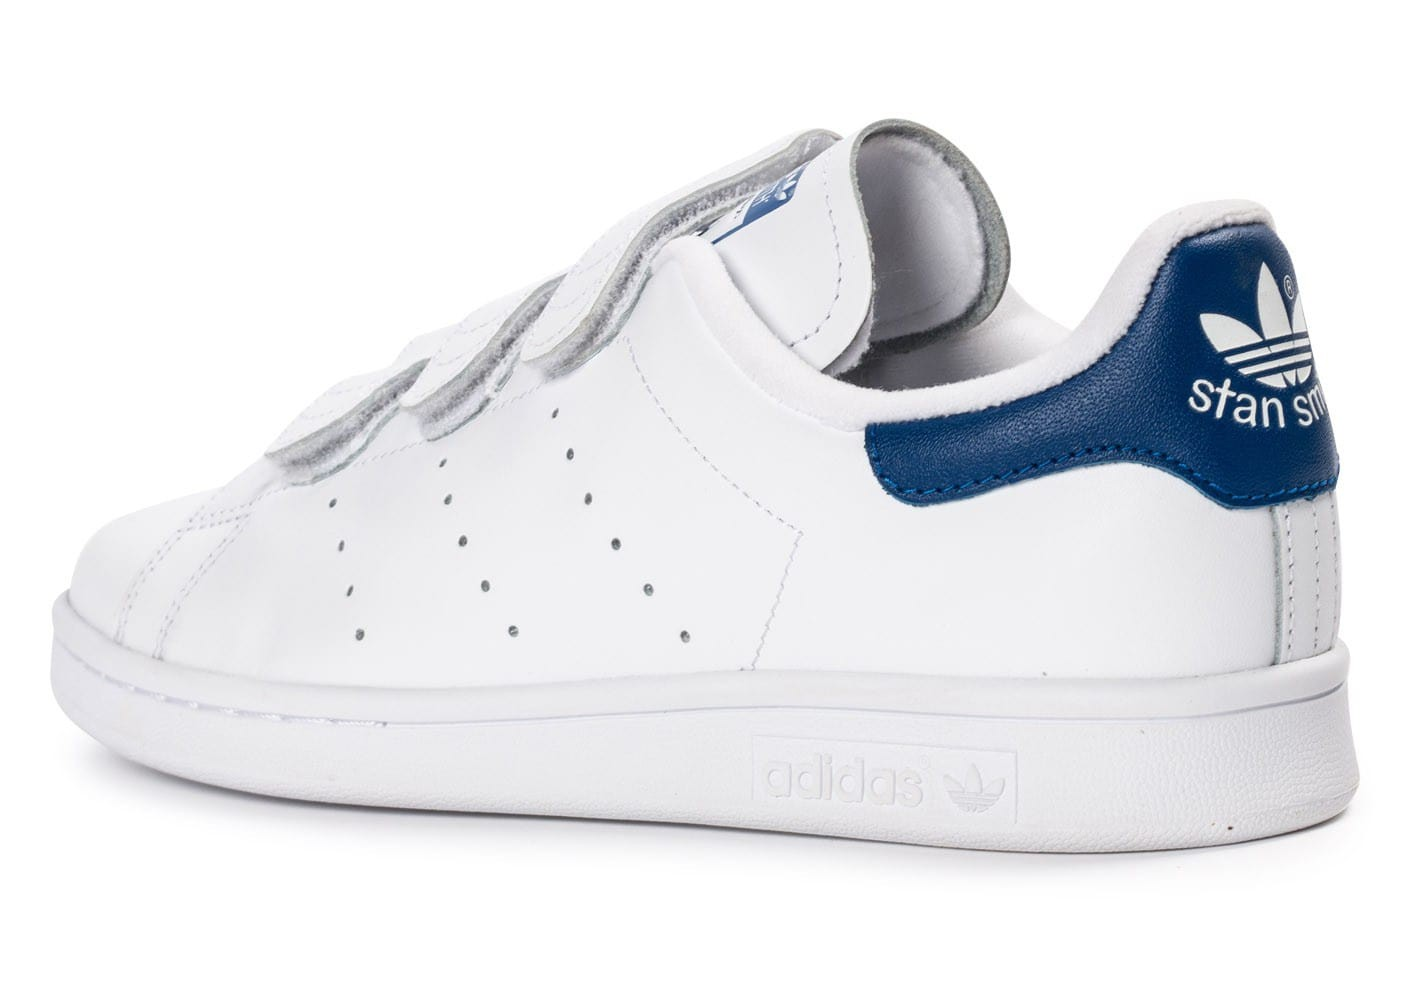 plus récent 09db4 ce007 low cost adidas stan smith scratch bleu 69fdf 3b101